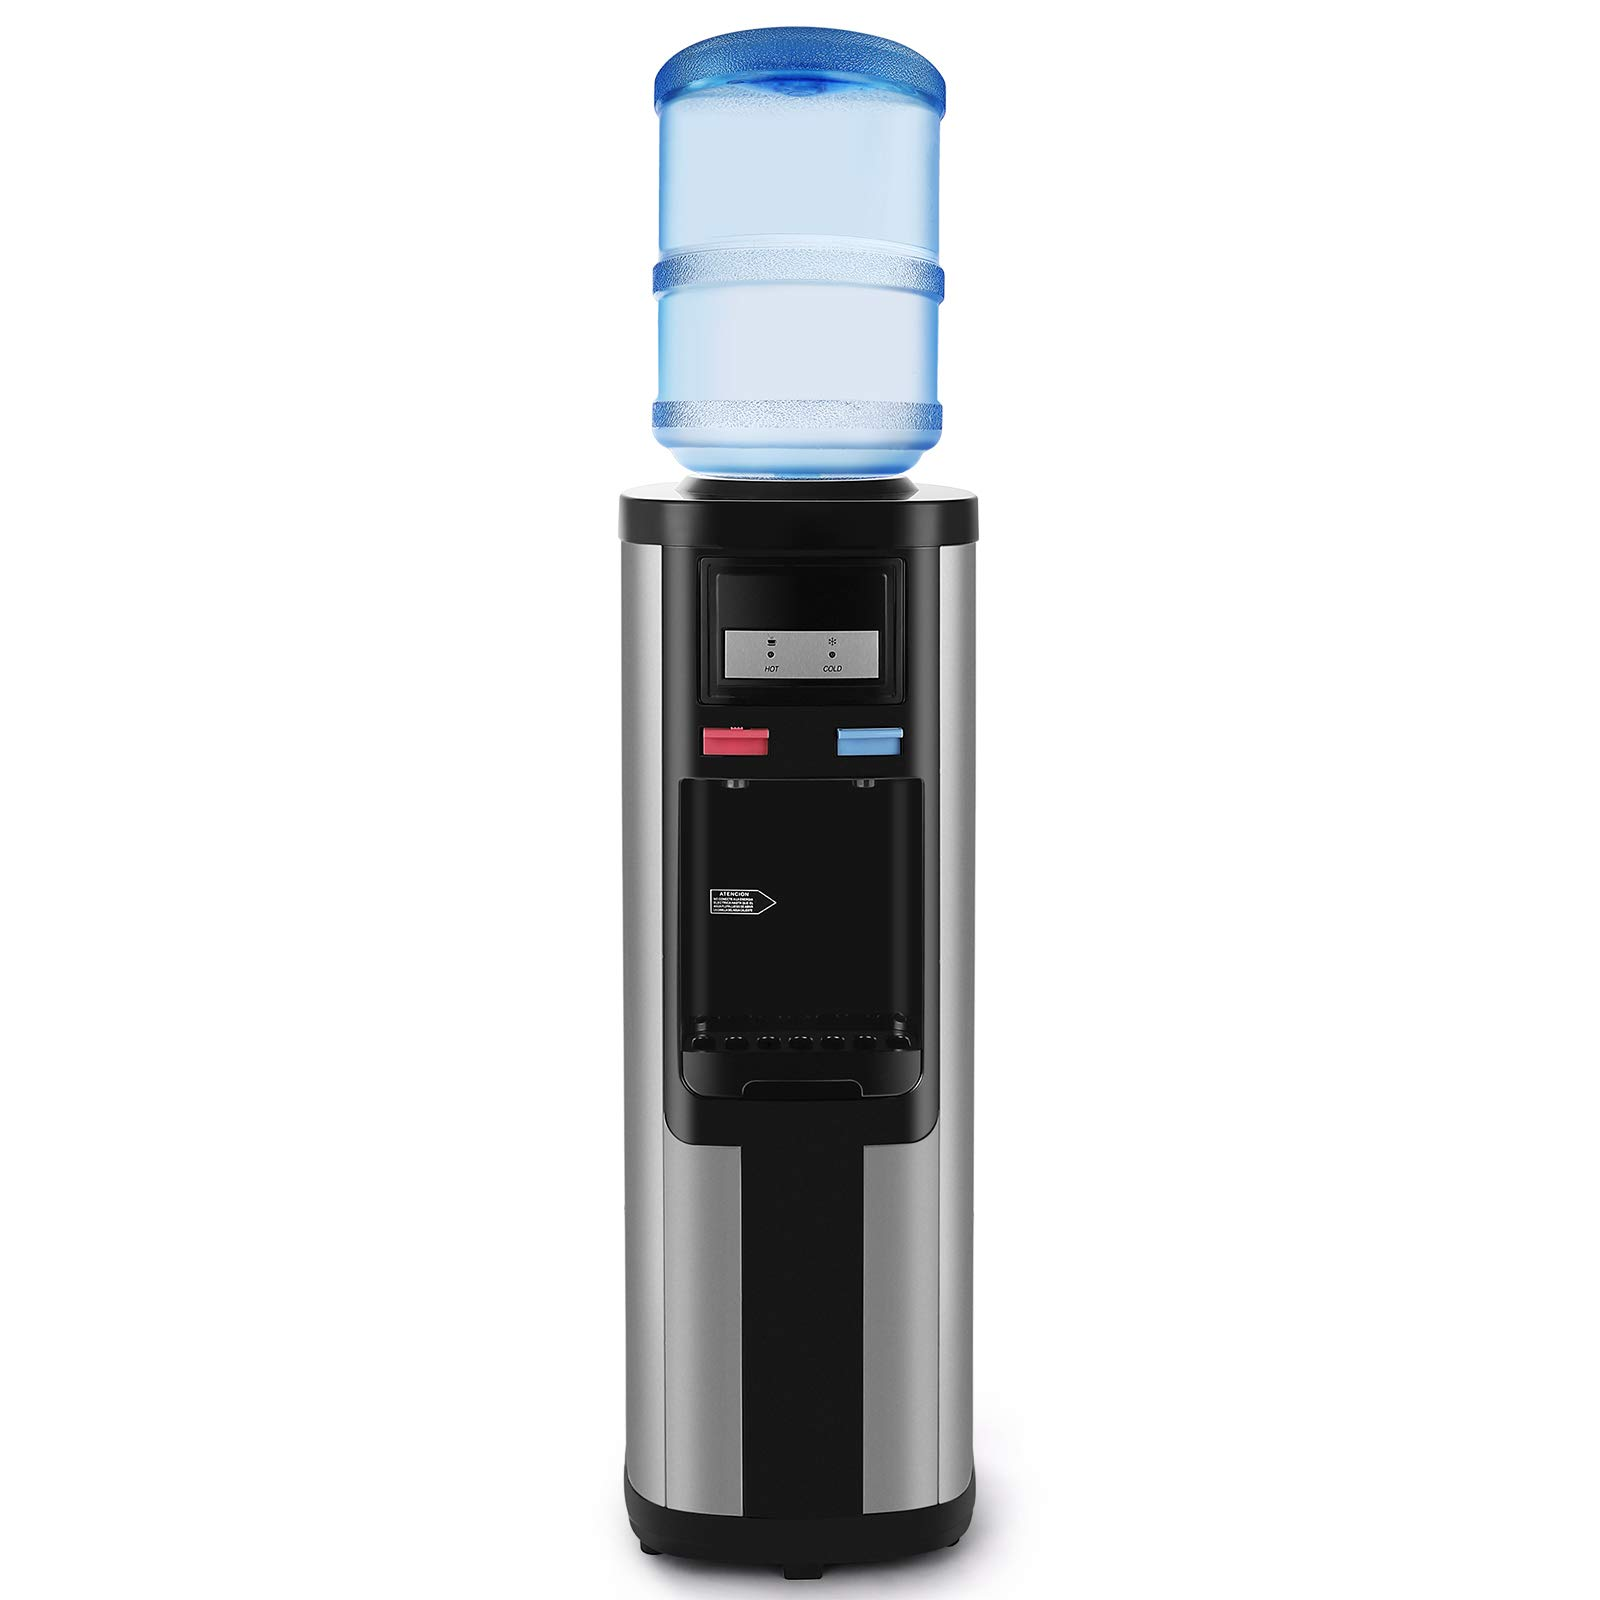 Water Cooler Dispenser 5 Gallon Top Loading Stainless Steel Freestanding Compressor Cooling,Hot and Normal Temperature Water by 4-EVER